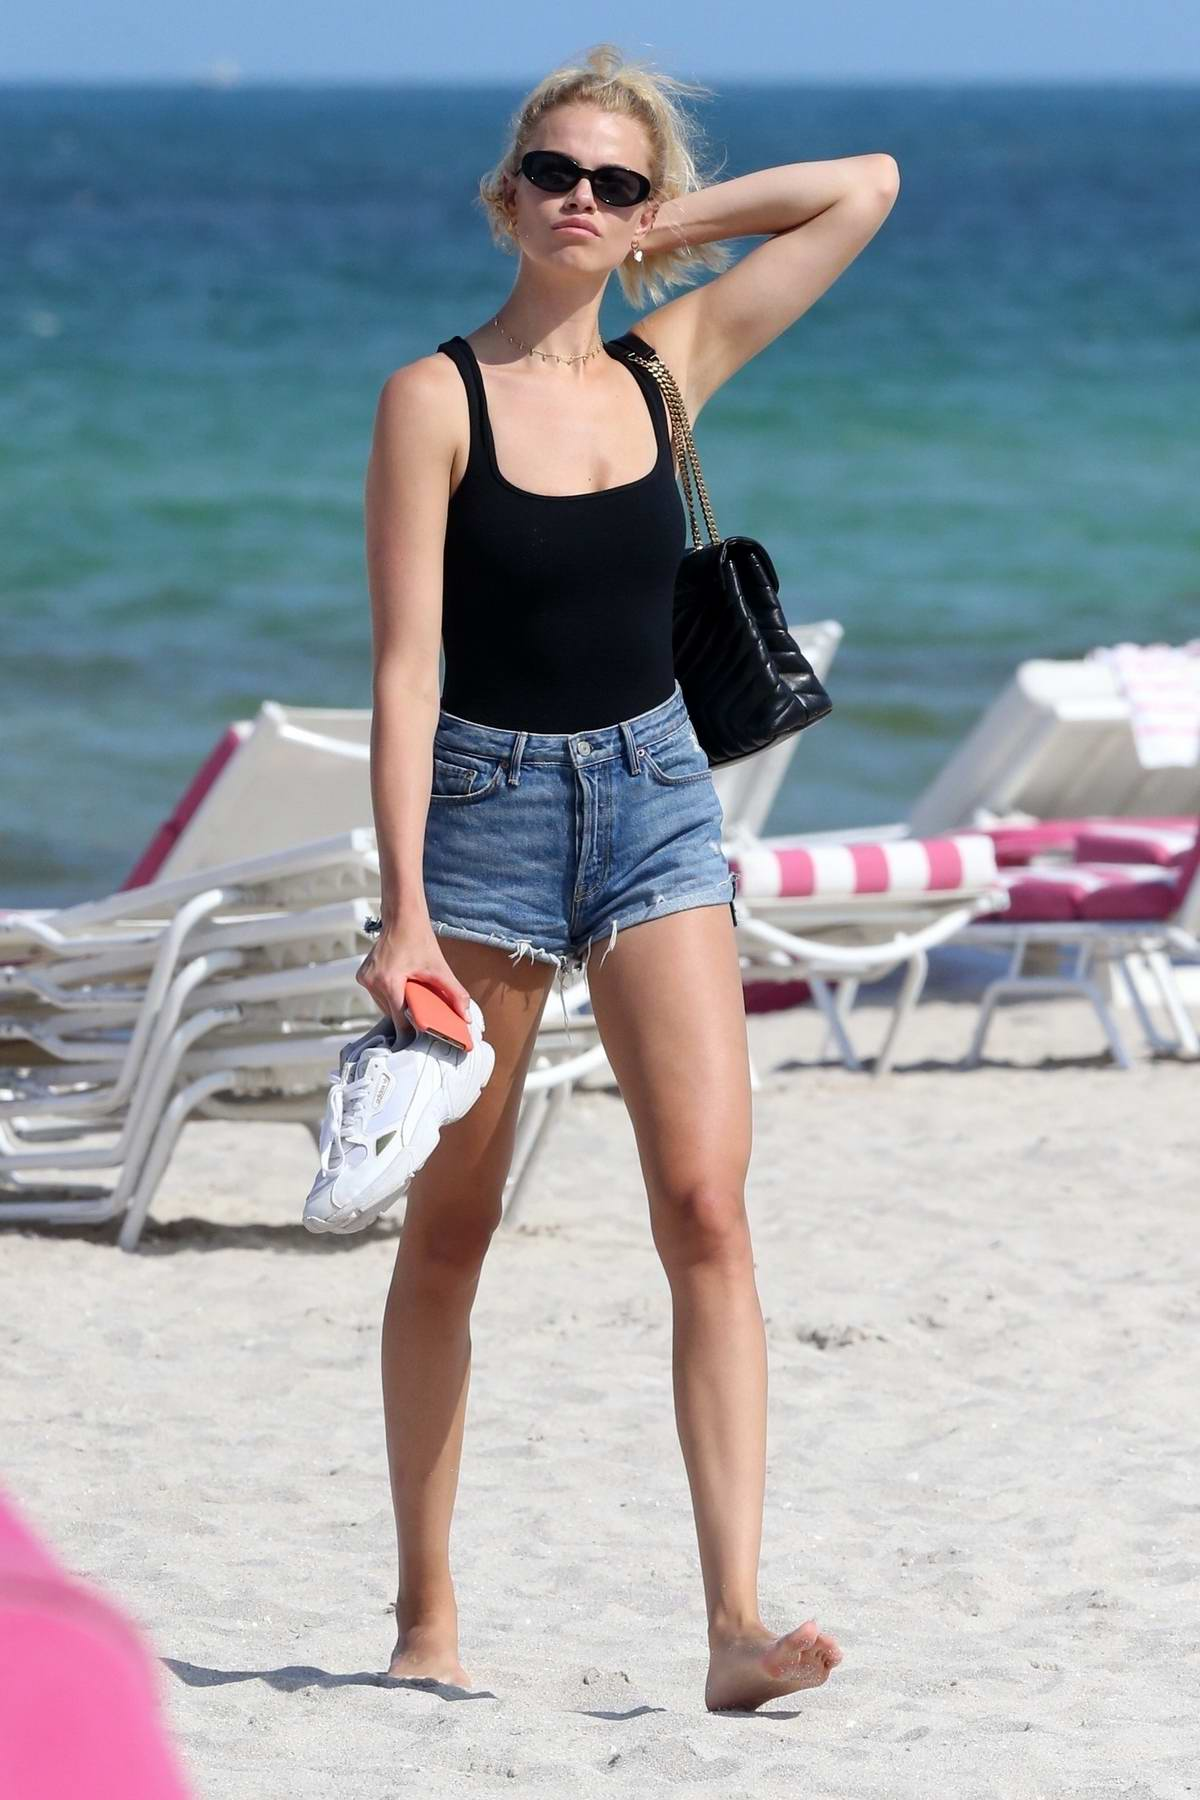 Hailey Clauson wears a black swimsuit as she hits the beach in Miami, Florida